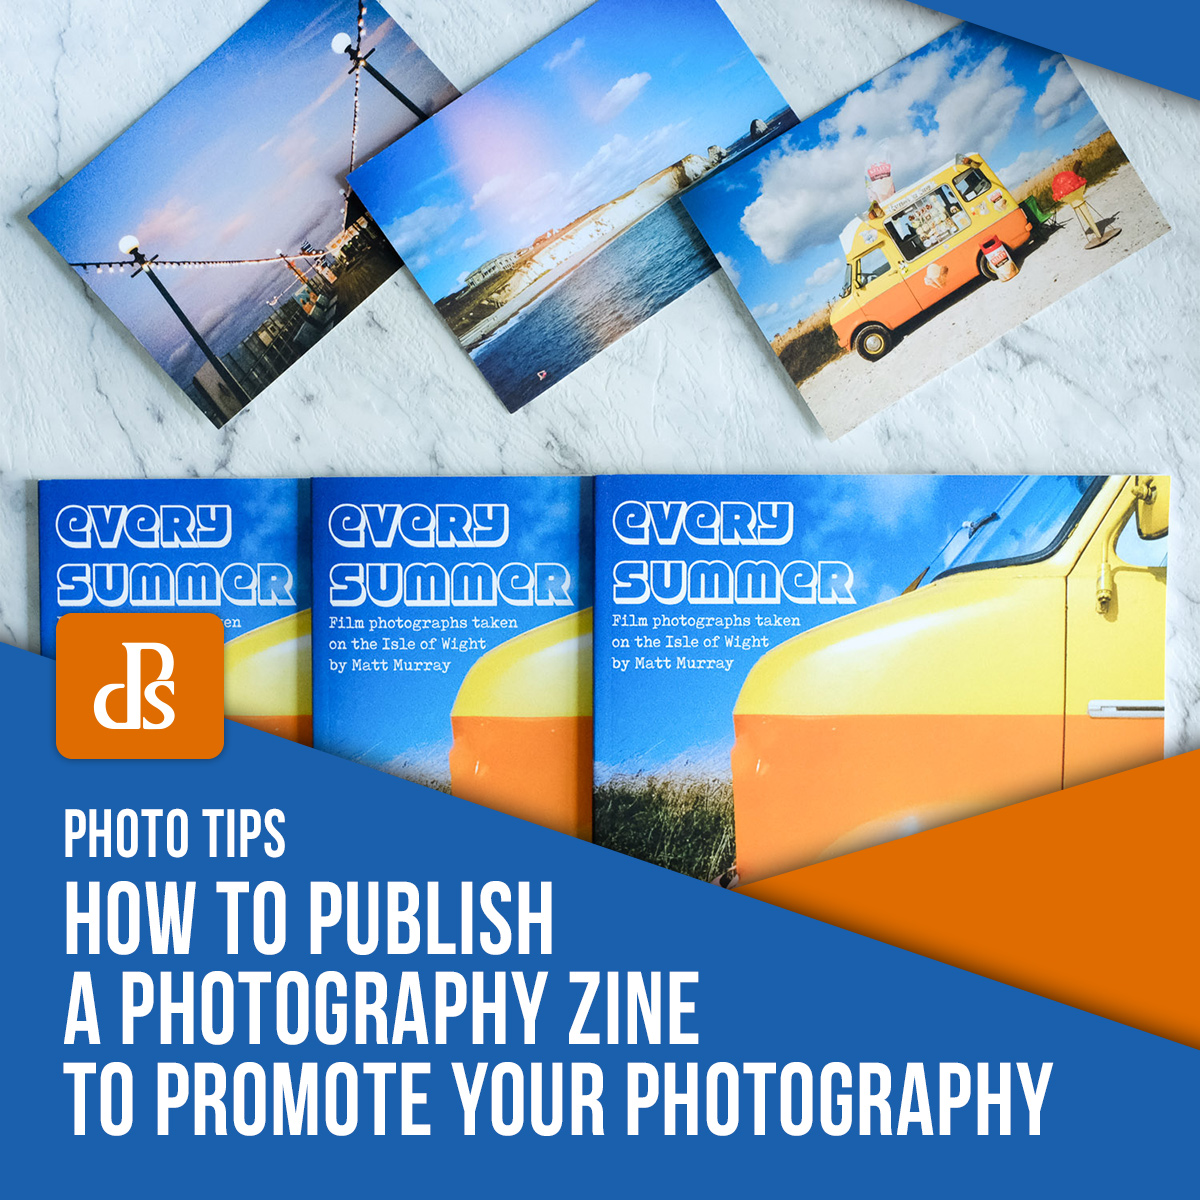 dps-how-to-publish-a-photography-zine